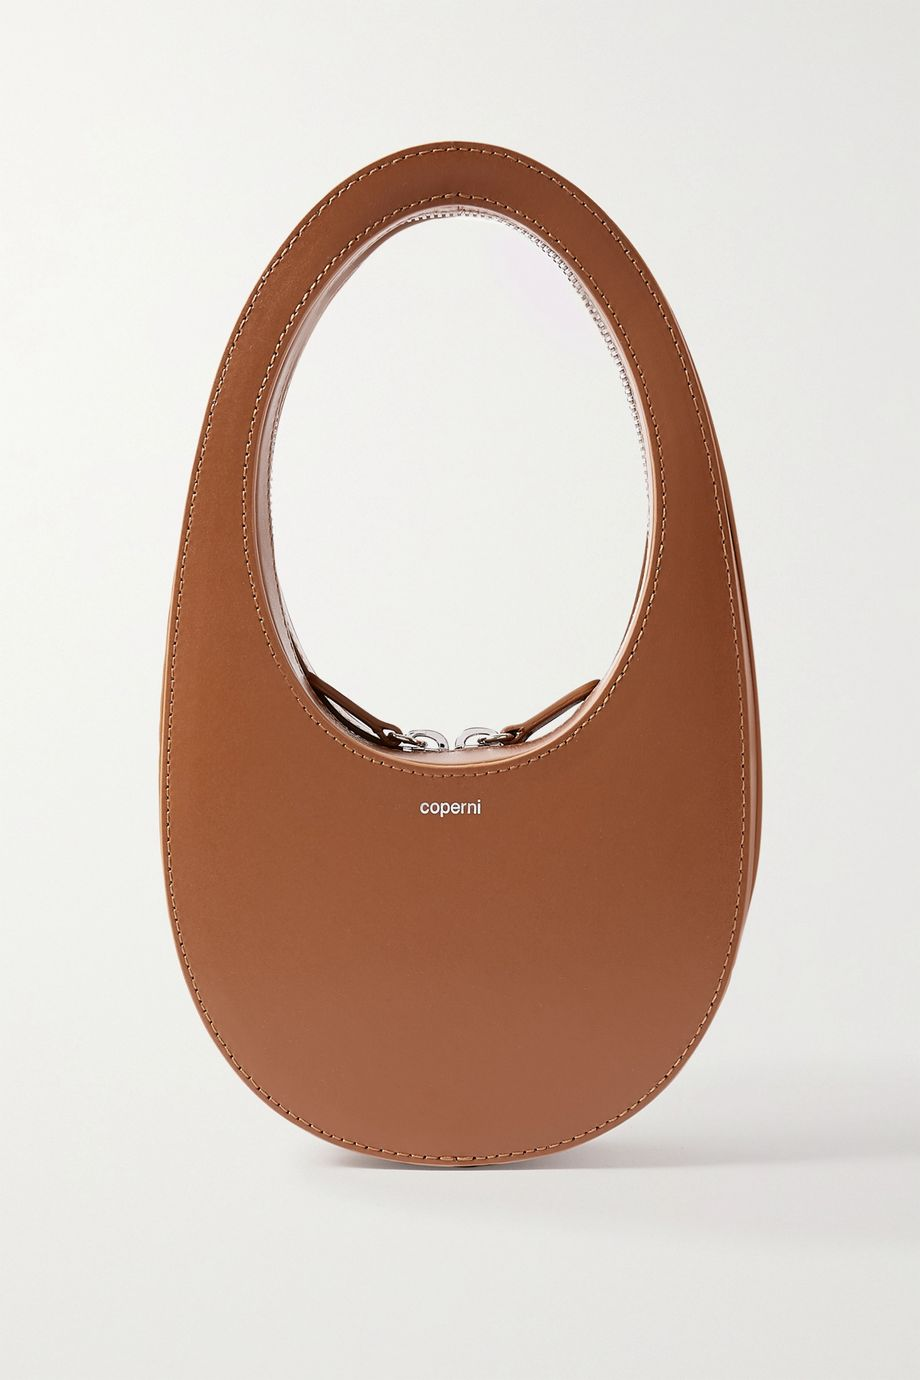 Coperni Swipe mini leather tote